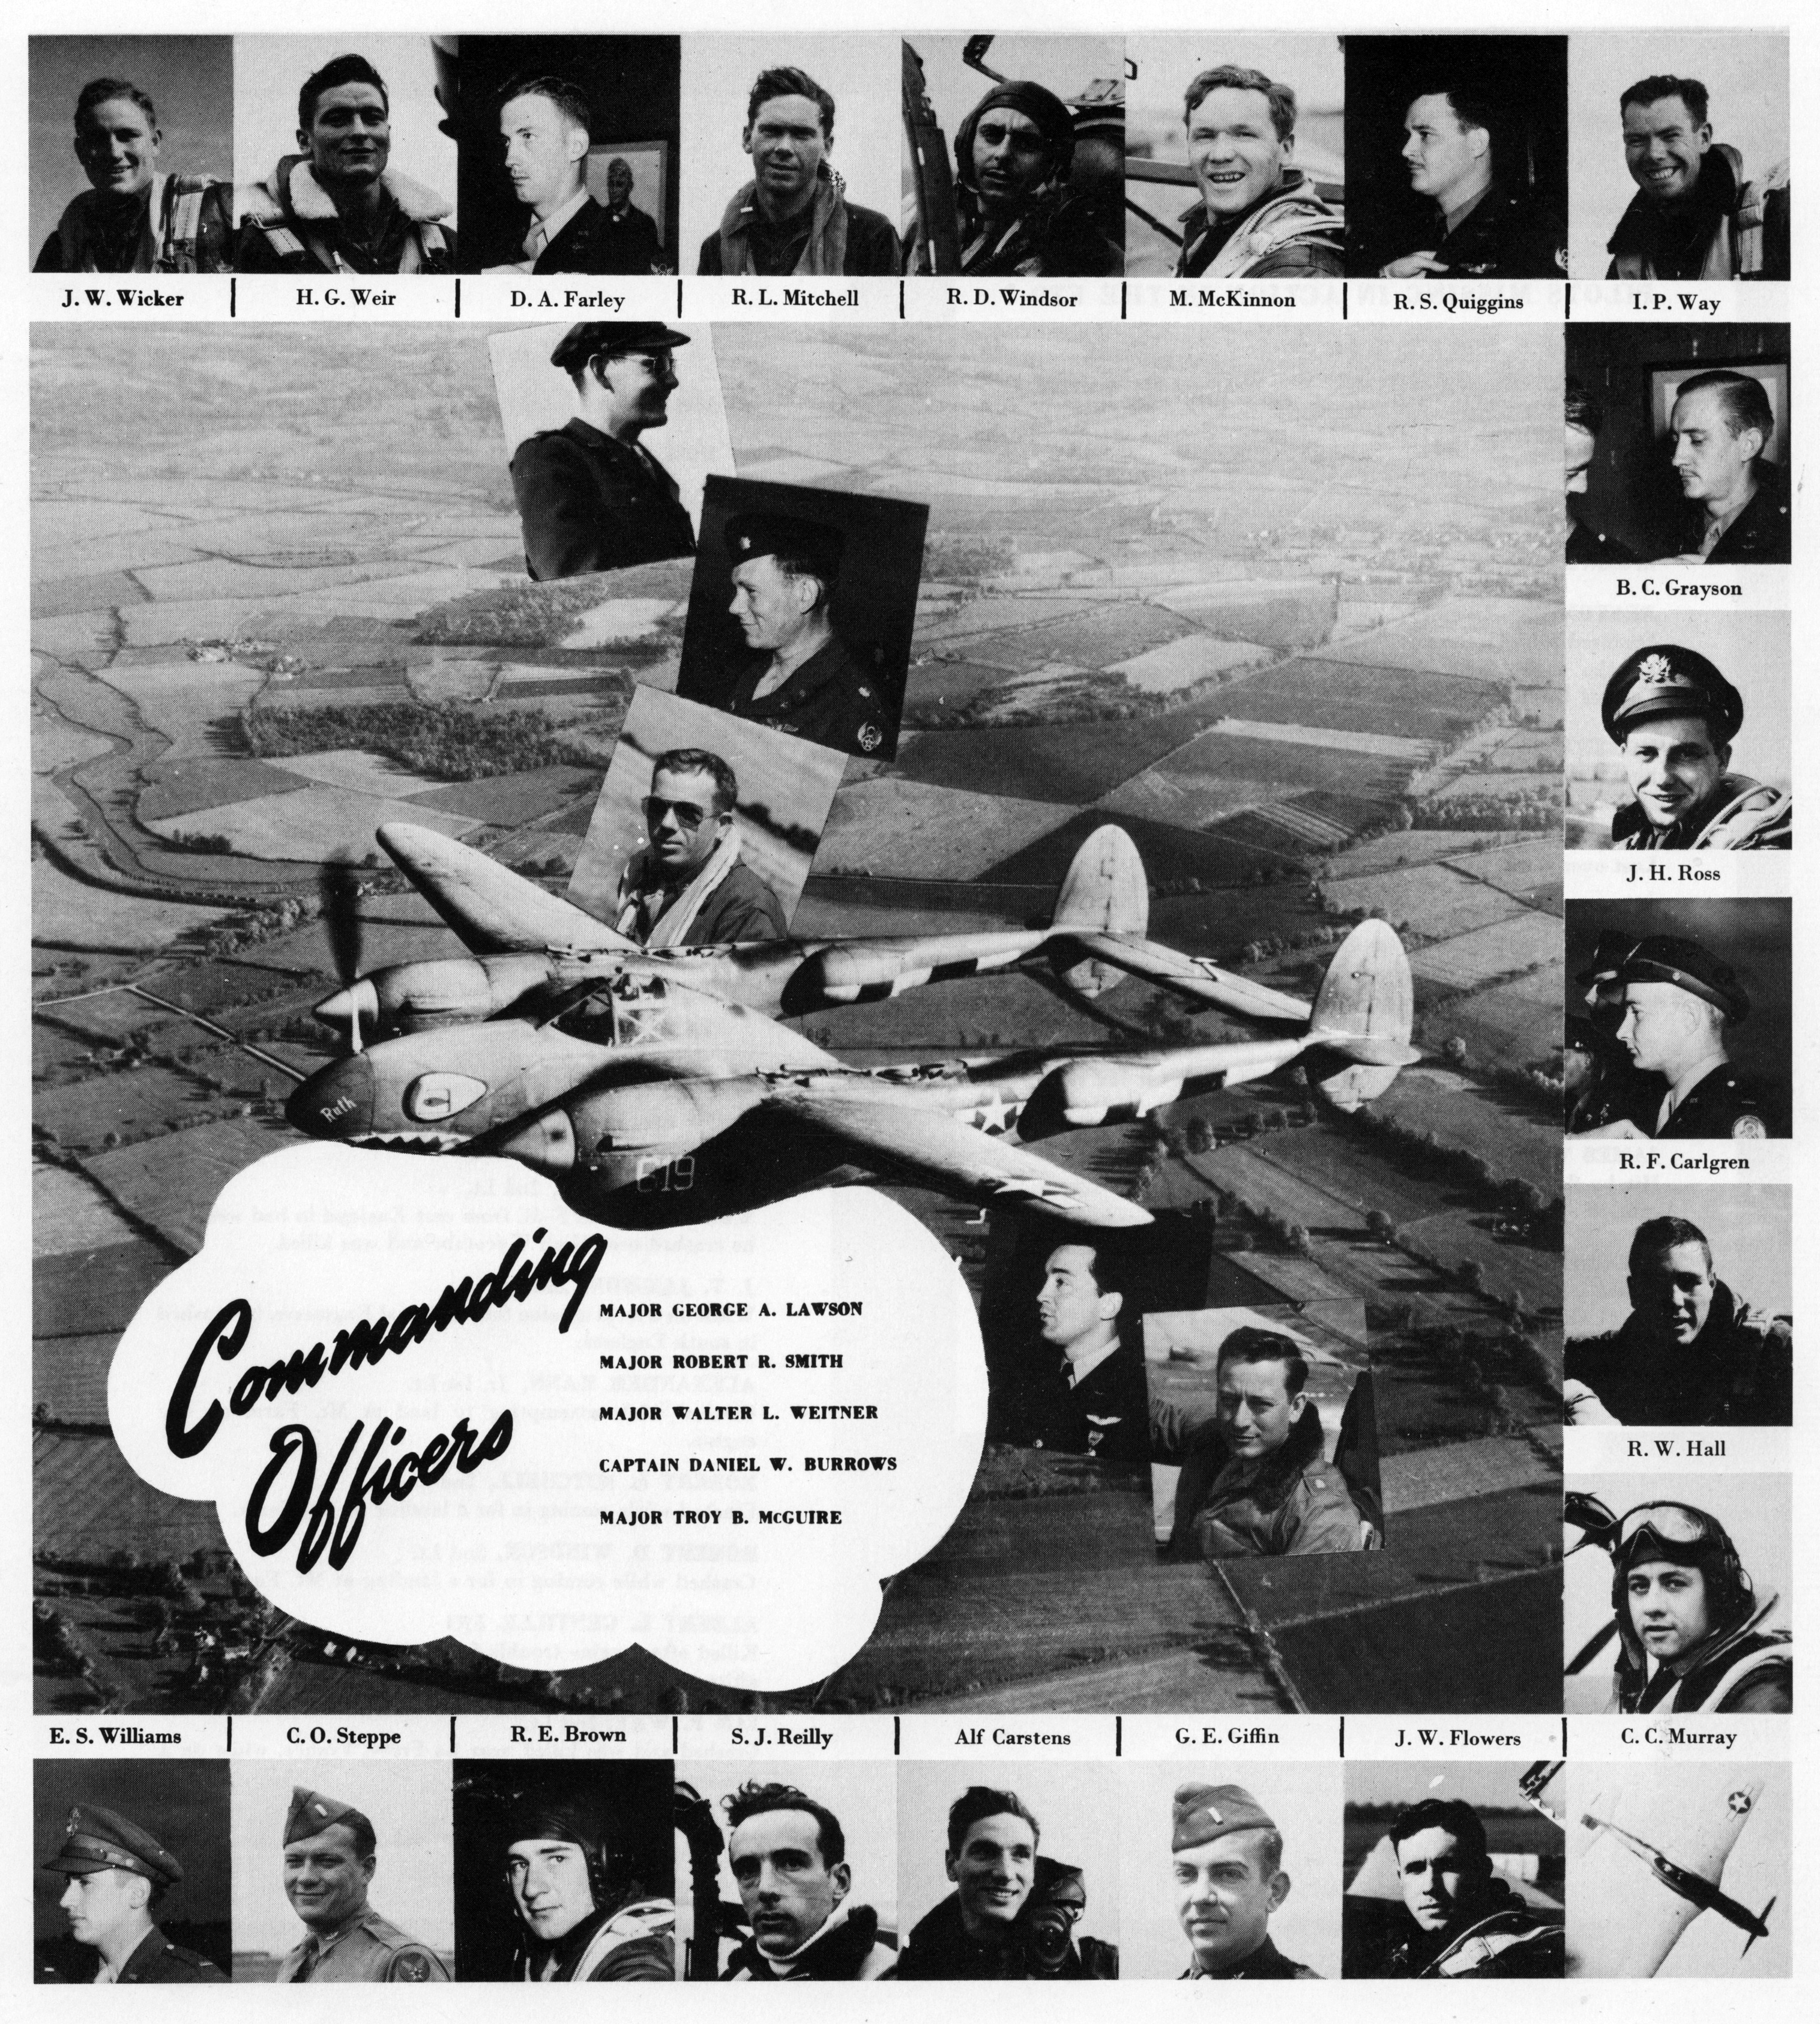 Aircrew 7th Photo Group 22nd Fighter Squadron Pilots Mount Farm Oxfordshire UK 1944 01